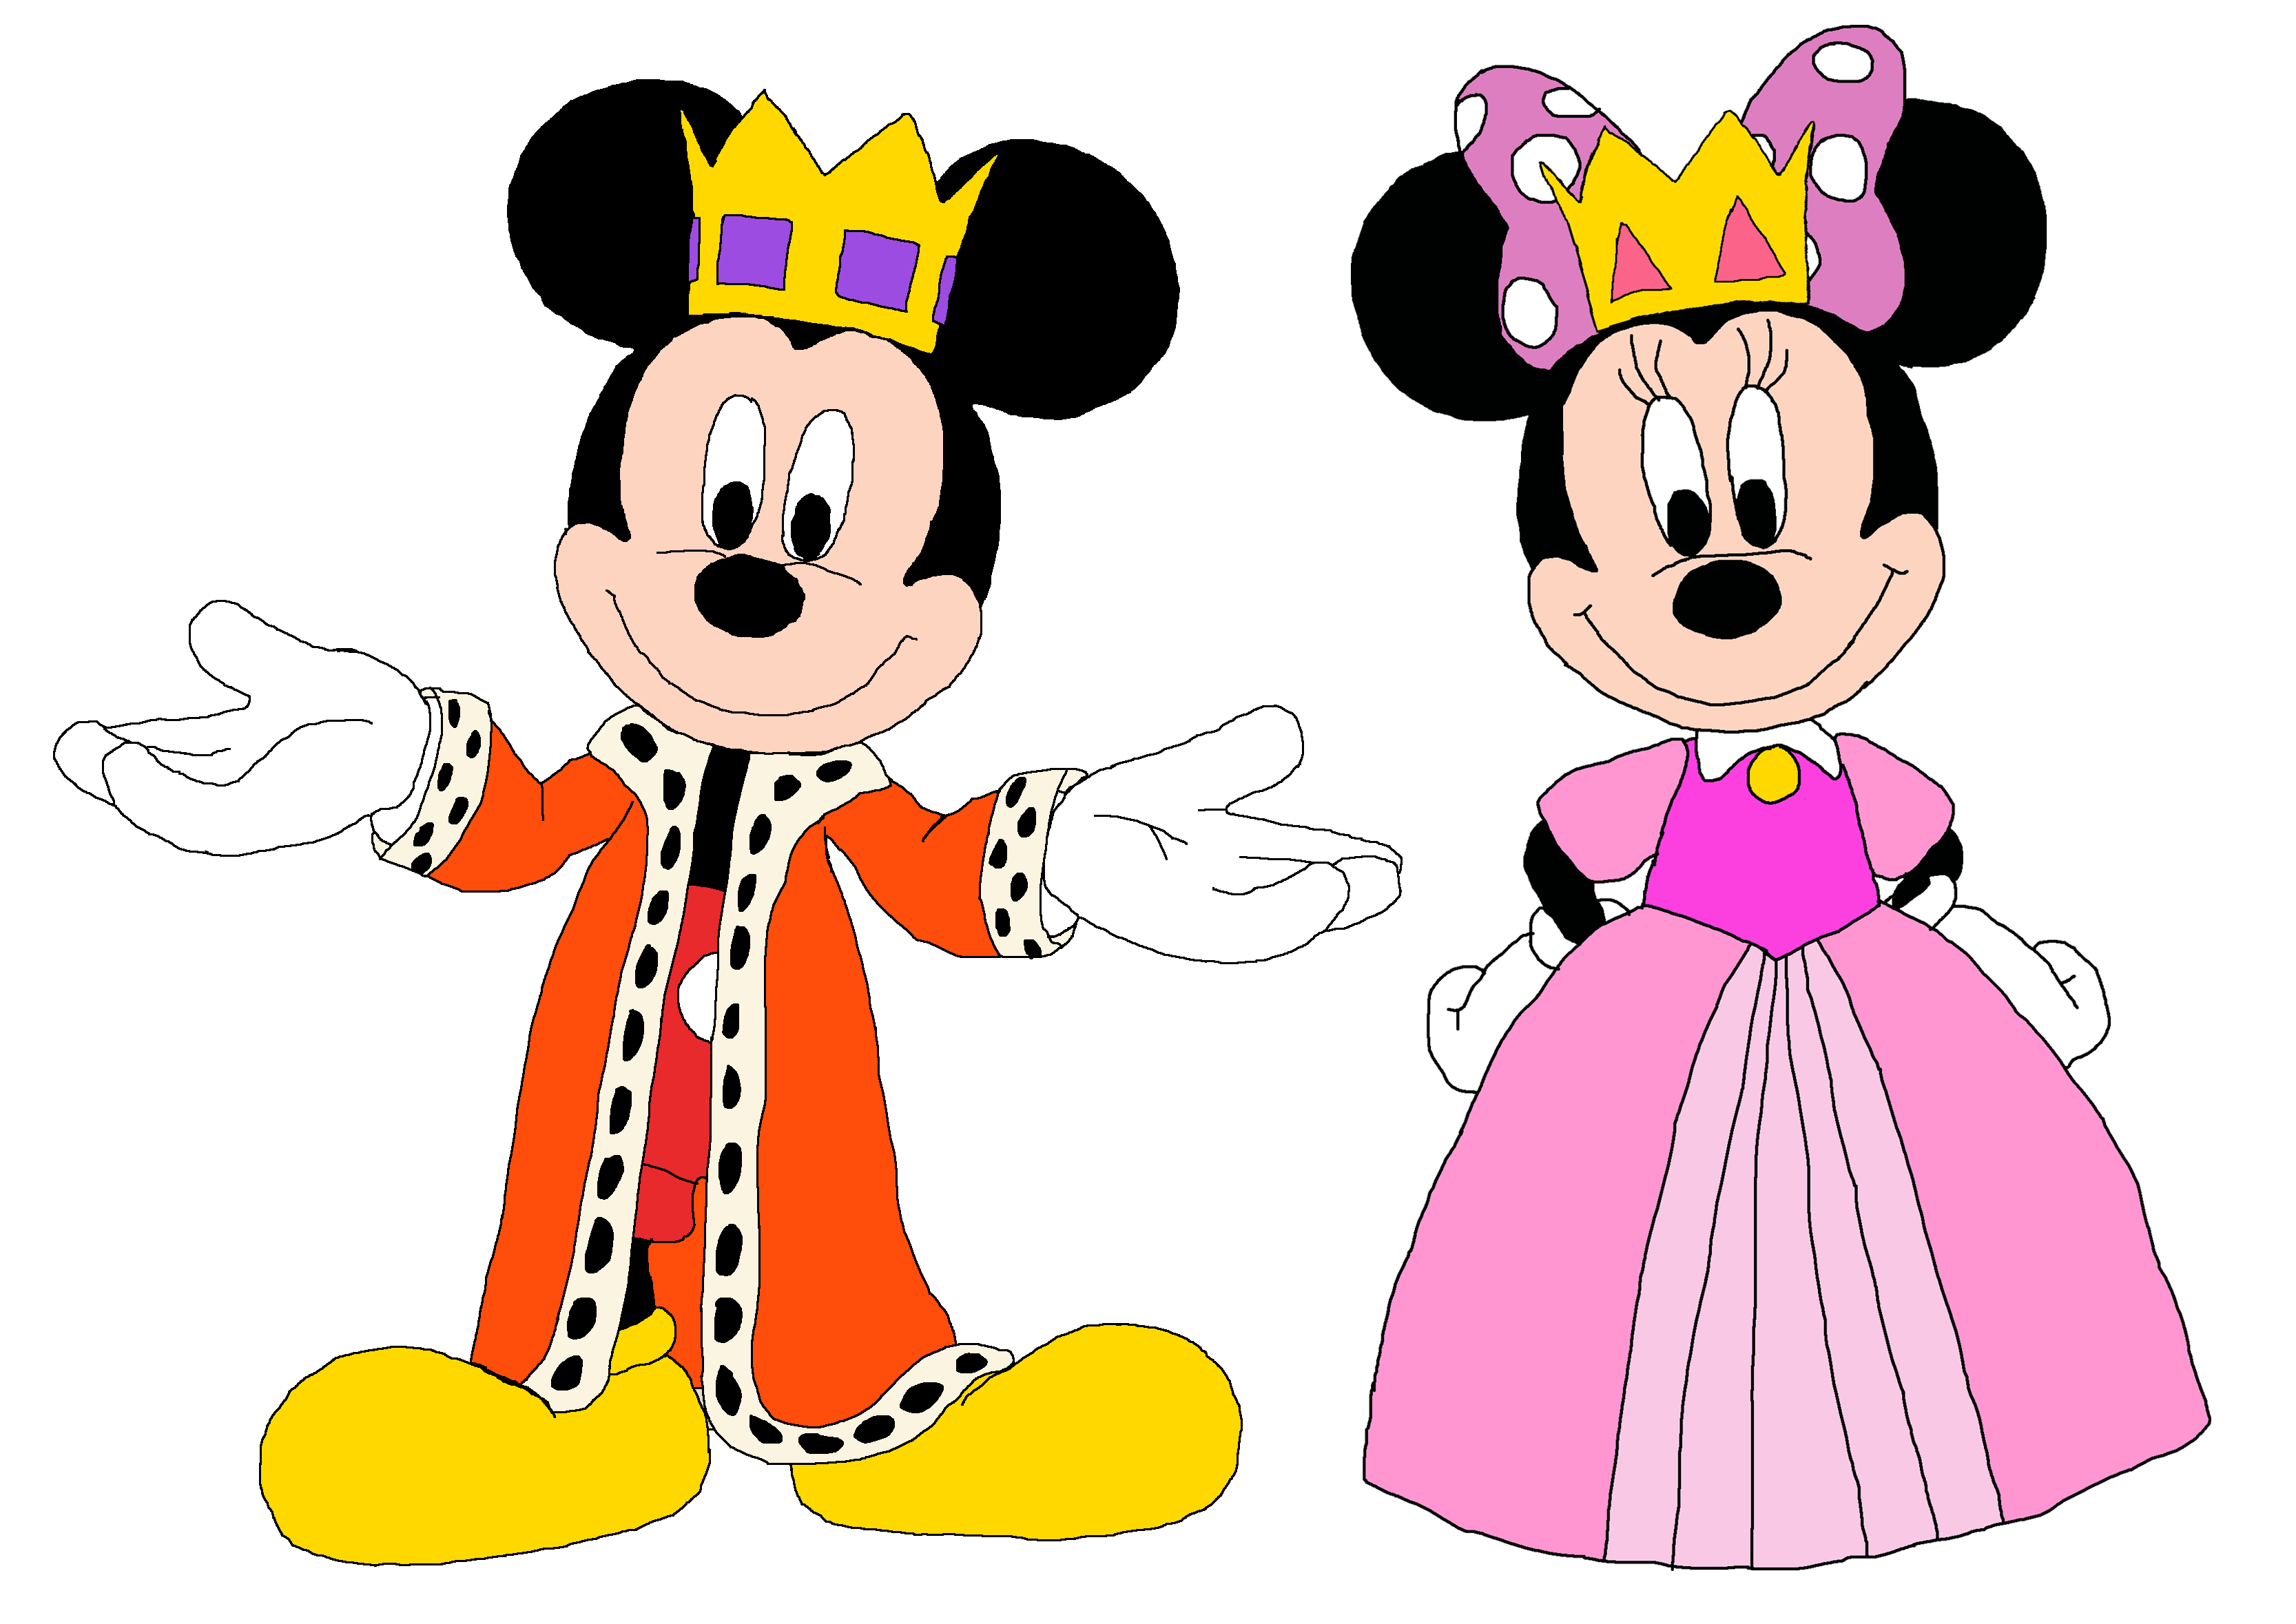 Prince Mickey and Princess Minnie - enmascarados